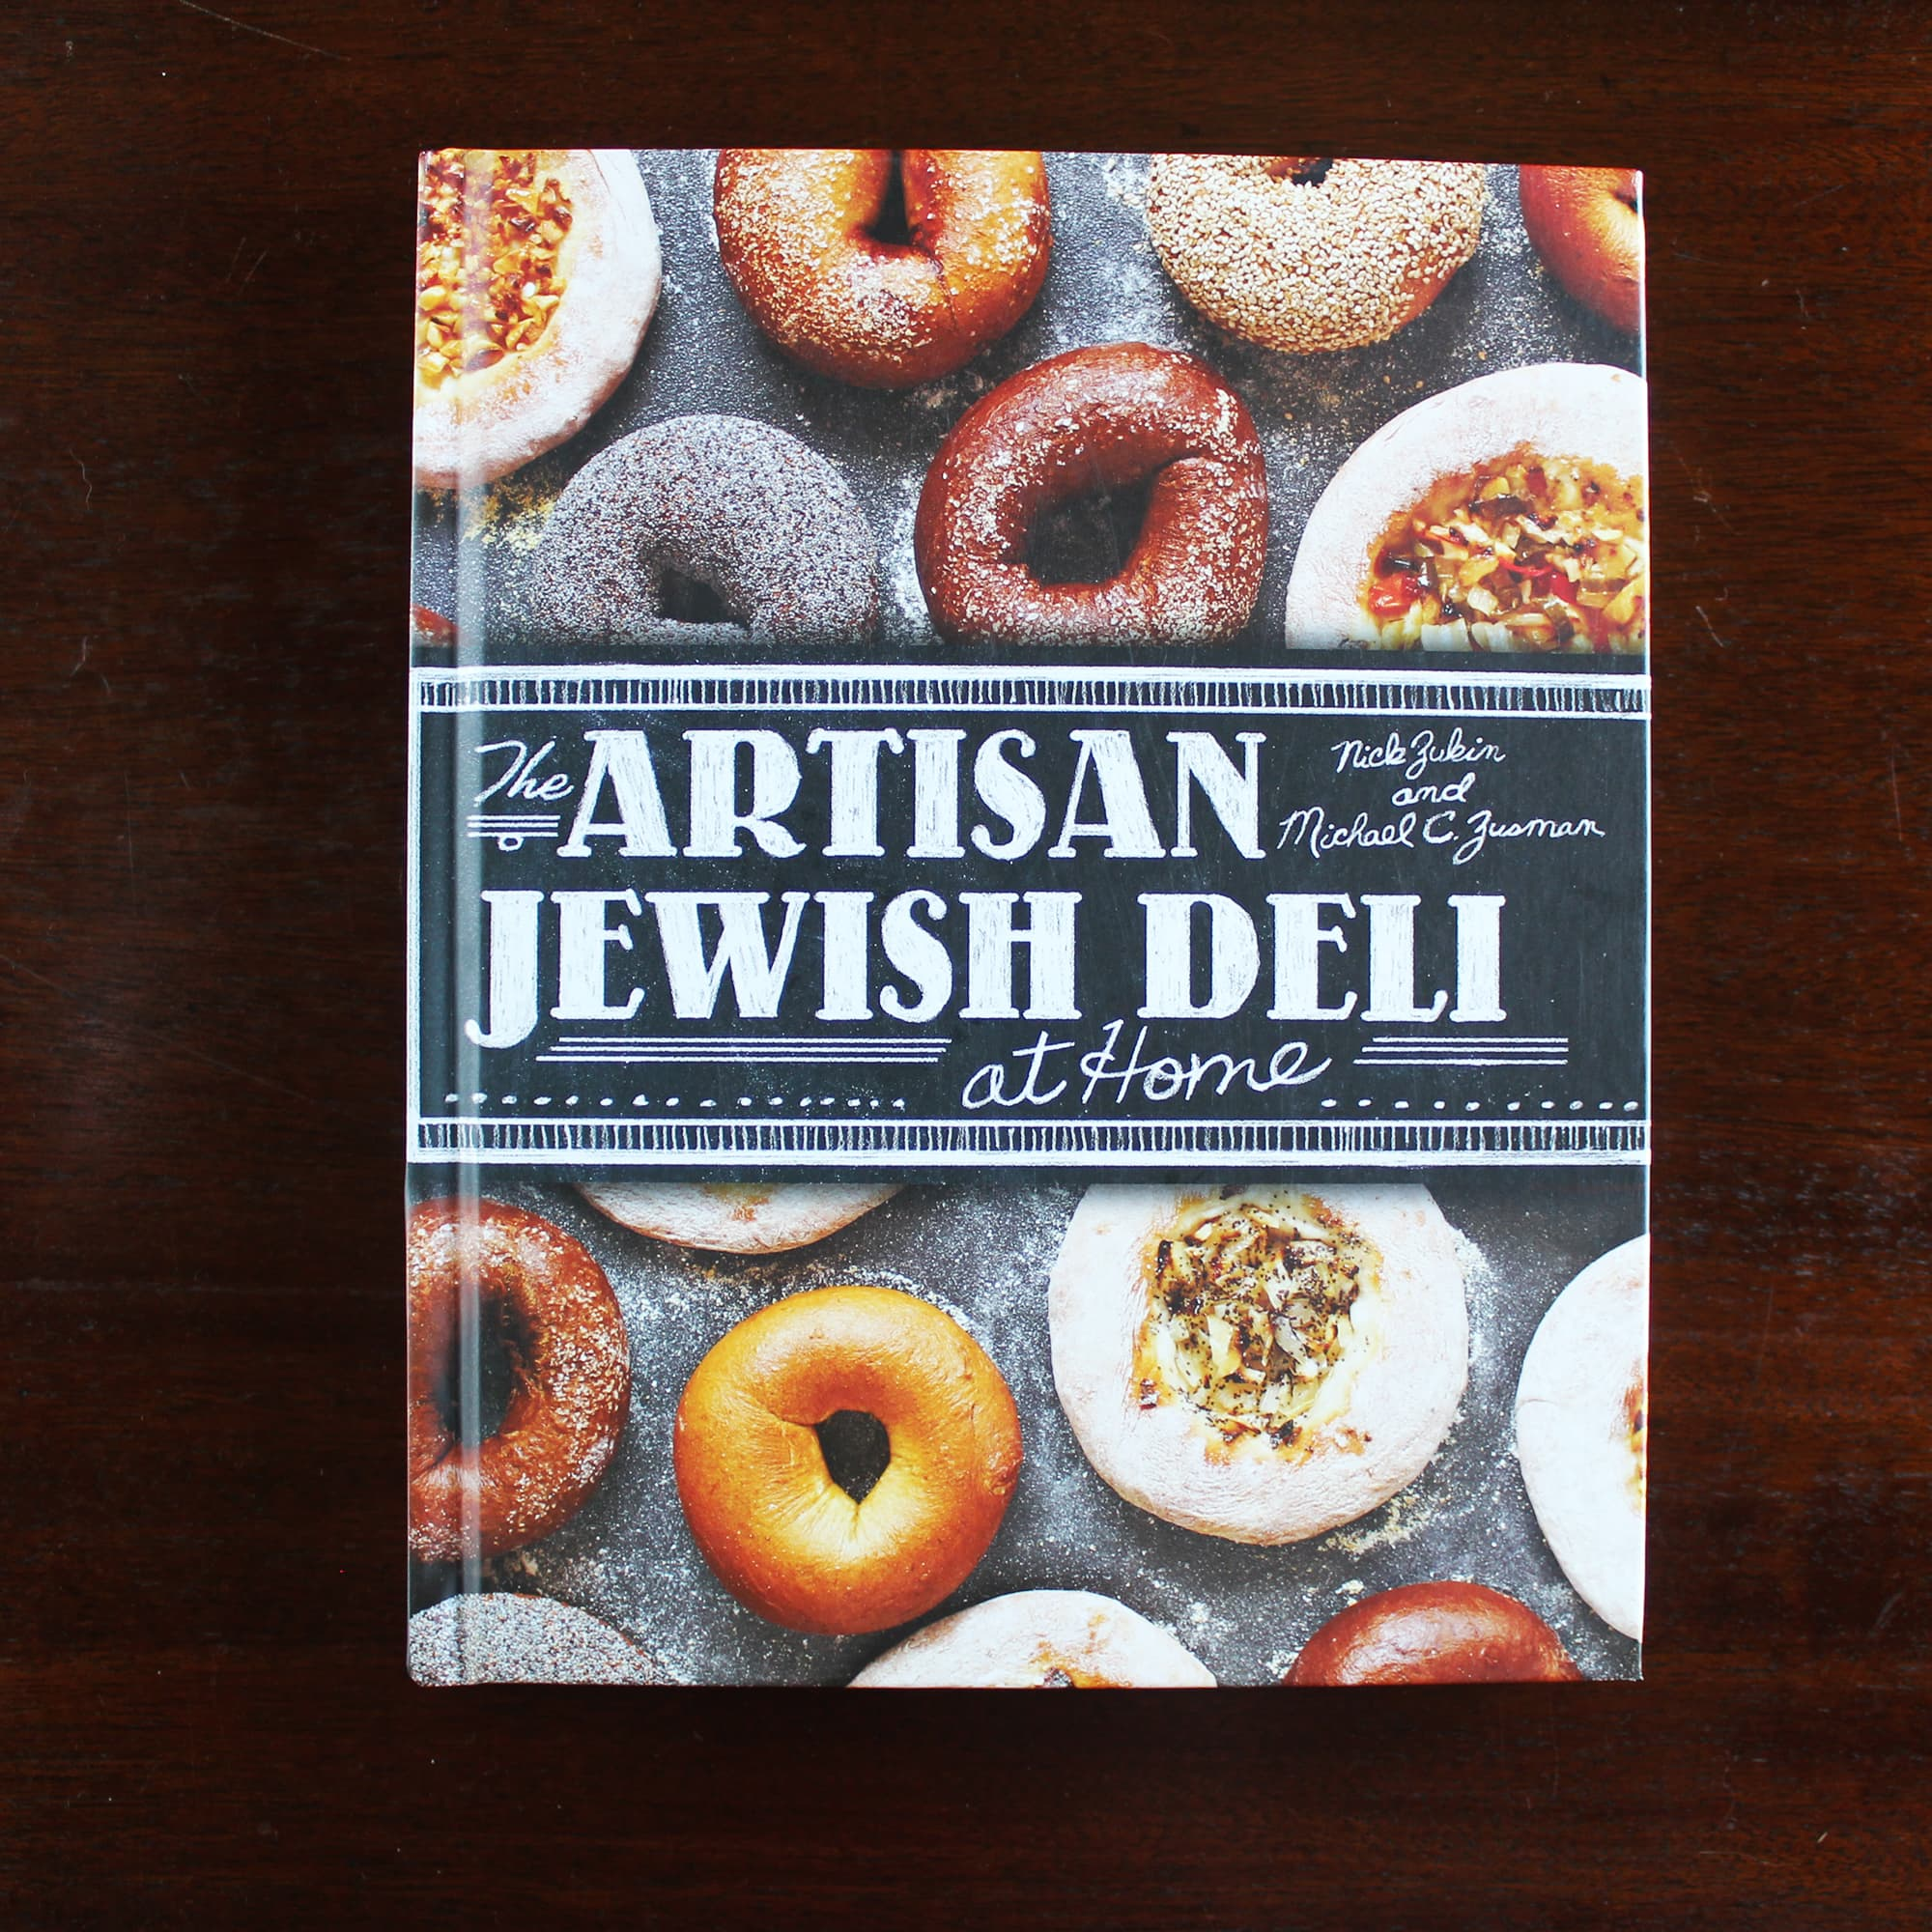 The Artisan Jewish Deli at Home by Nick Zukin & Michael C. Zusman: gallery image 1